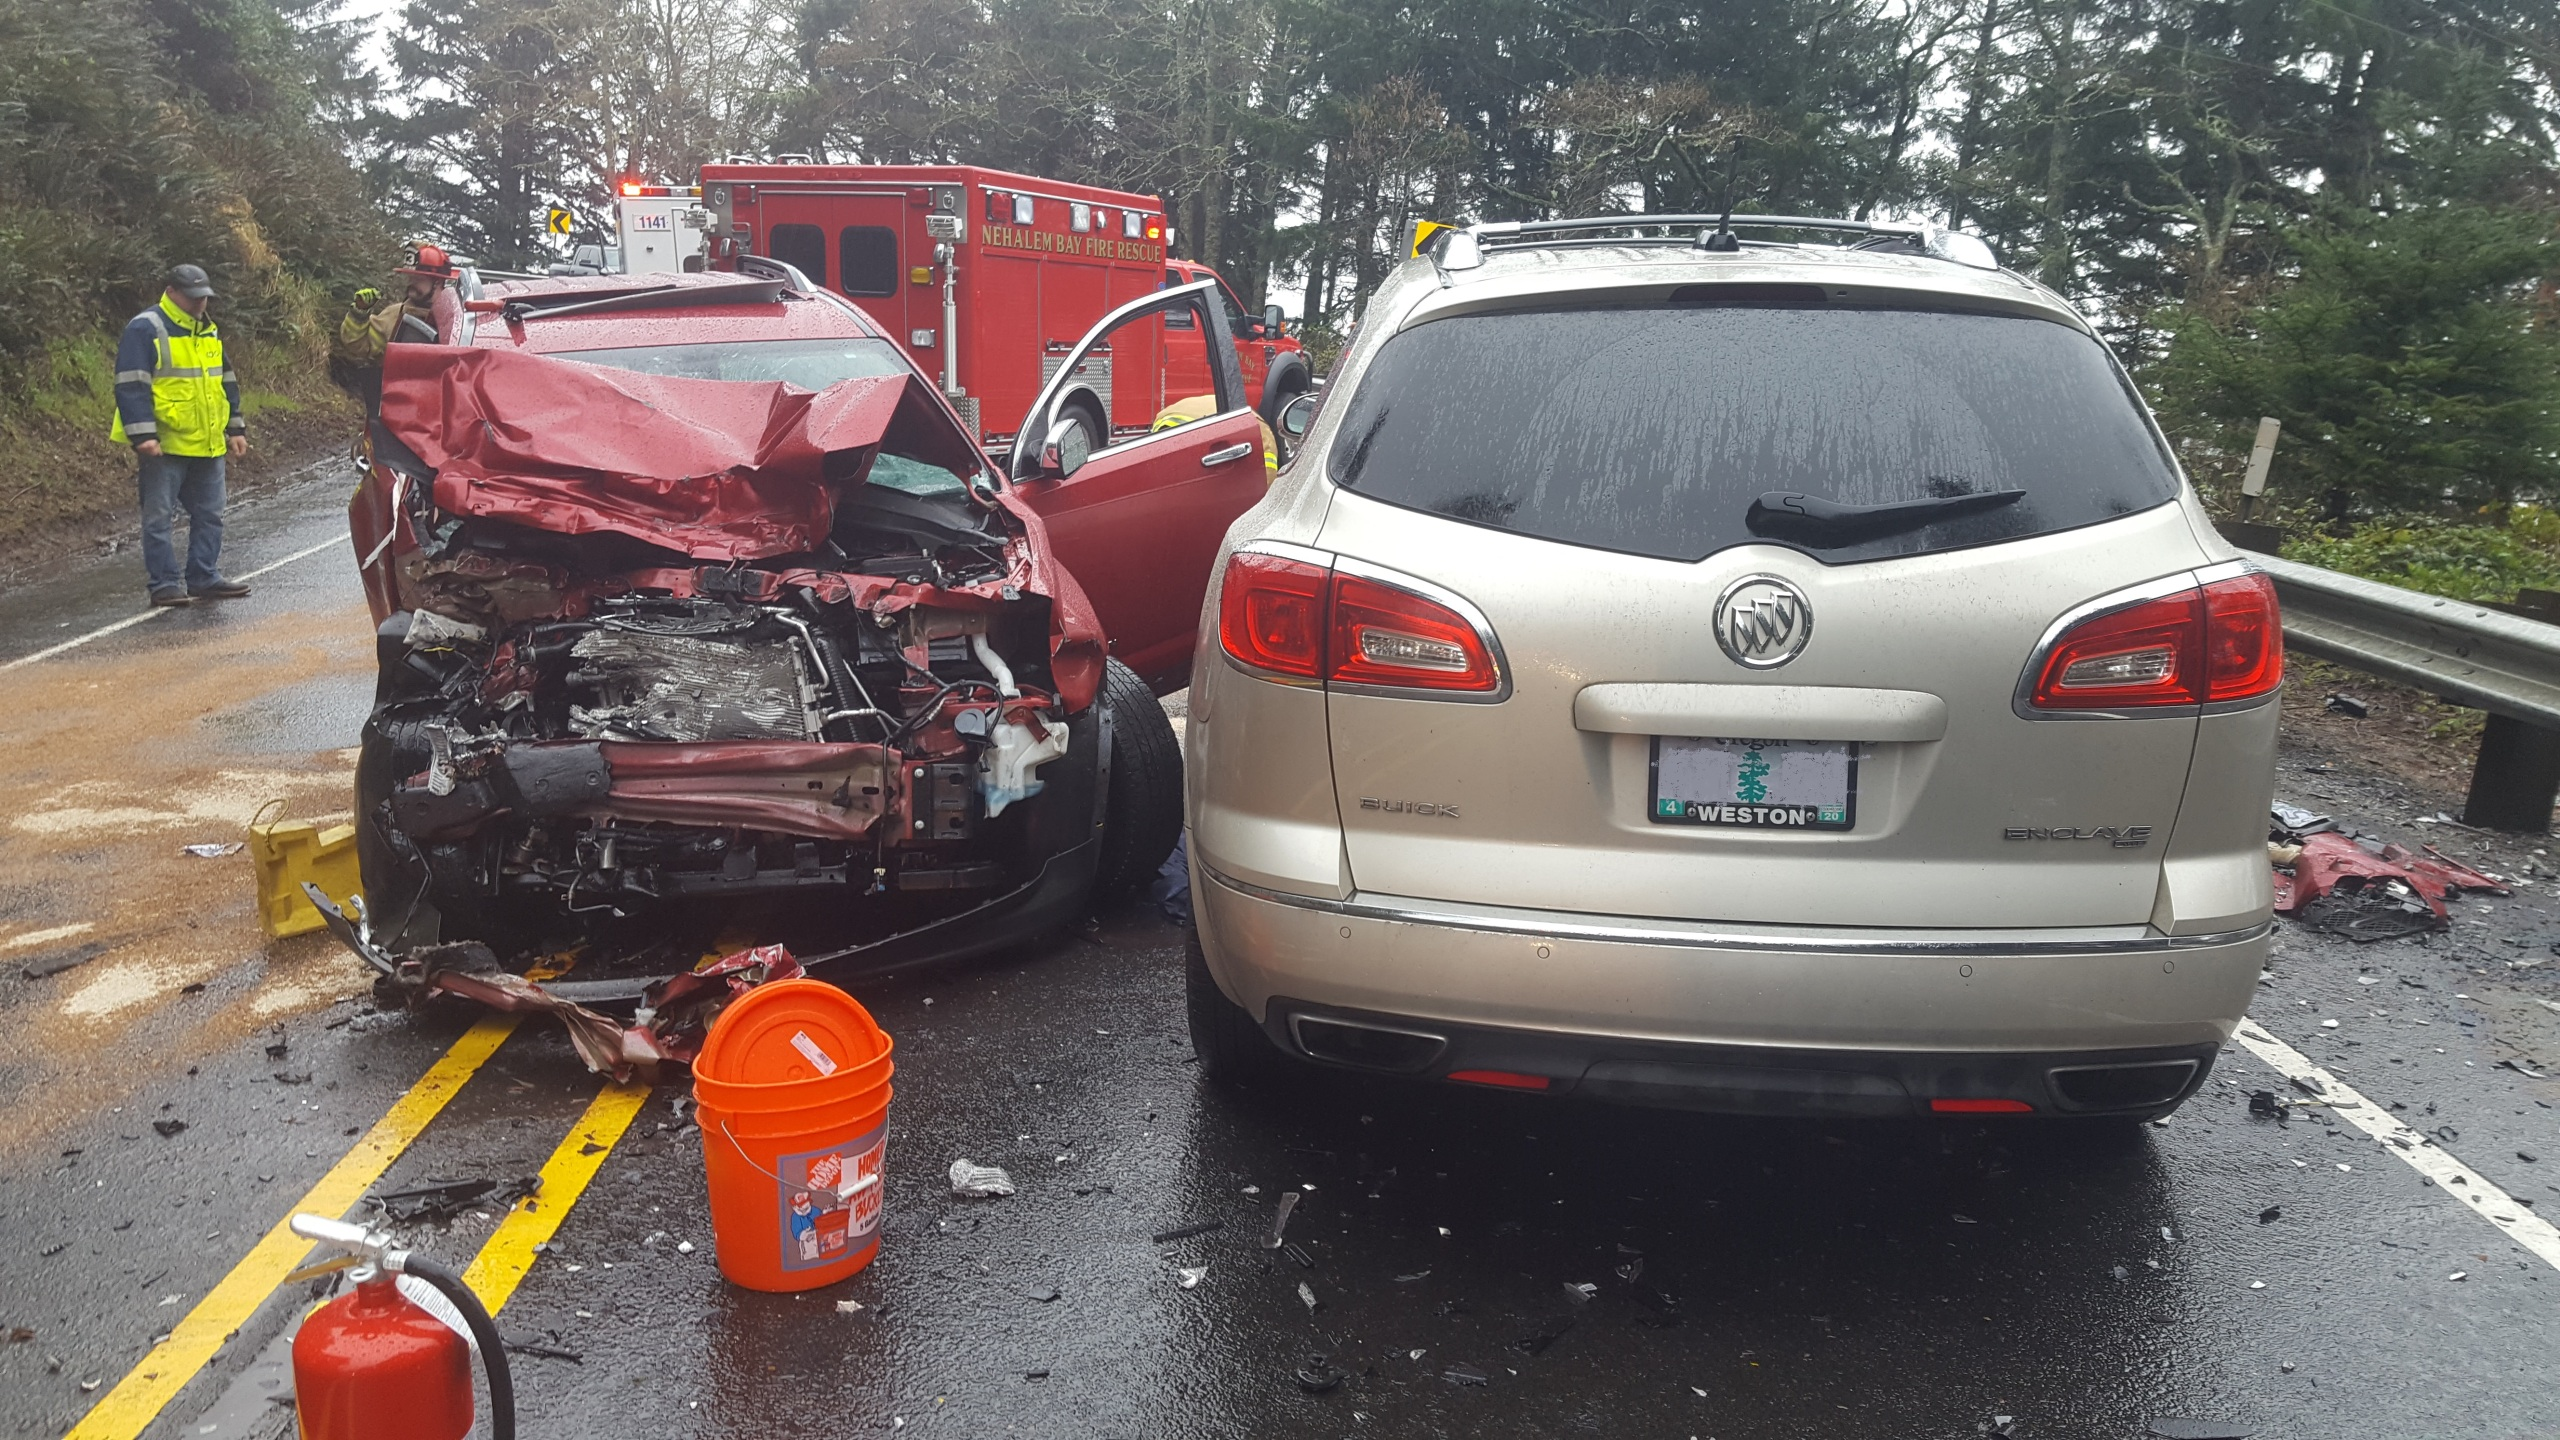 By Photo Congress || Highway 101 Oregon Accident Today